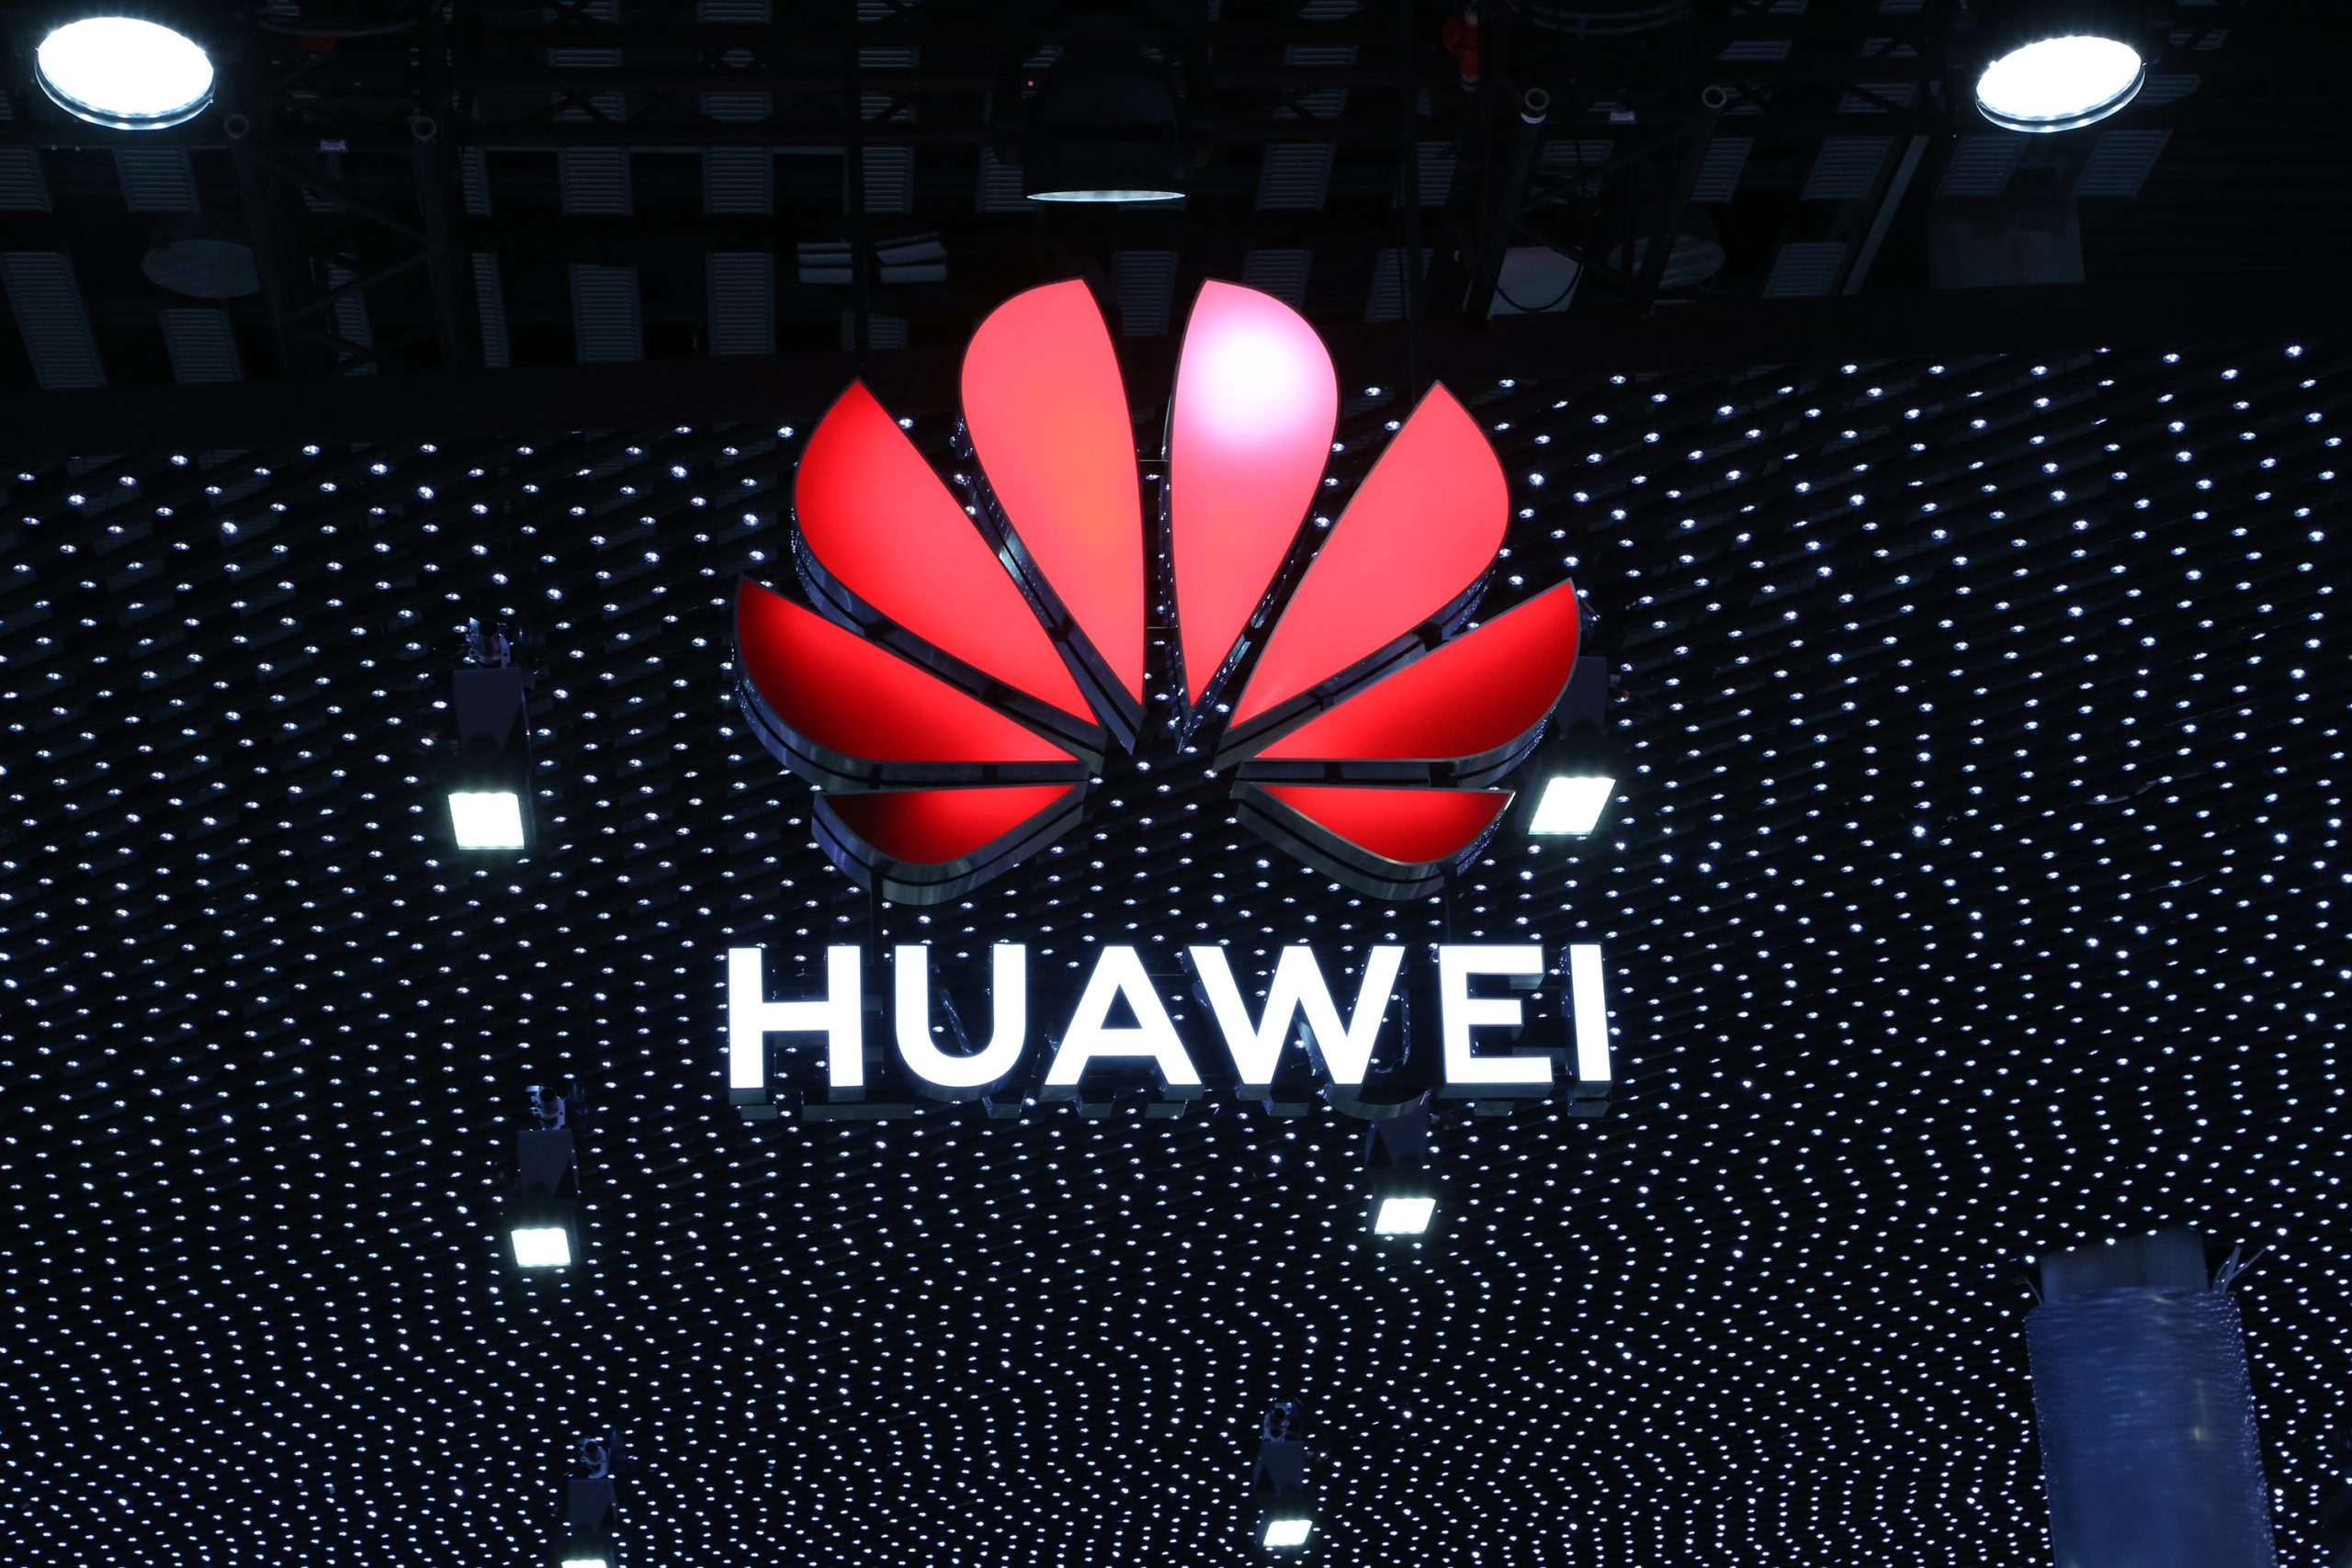 Huawei is making constant changes in its products due to US Ban: Founder